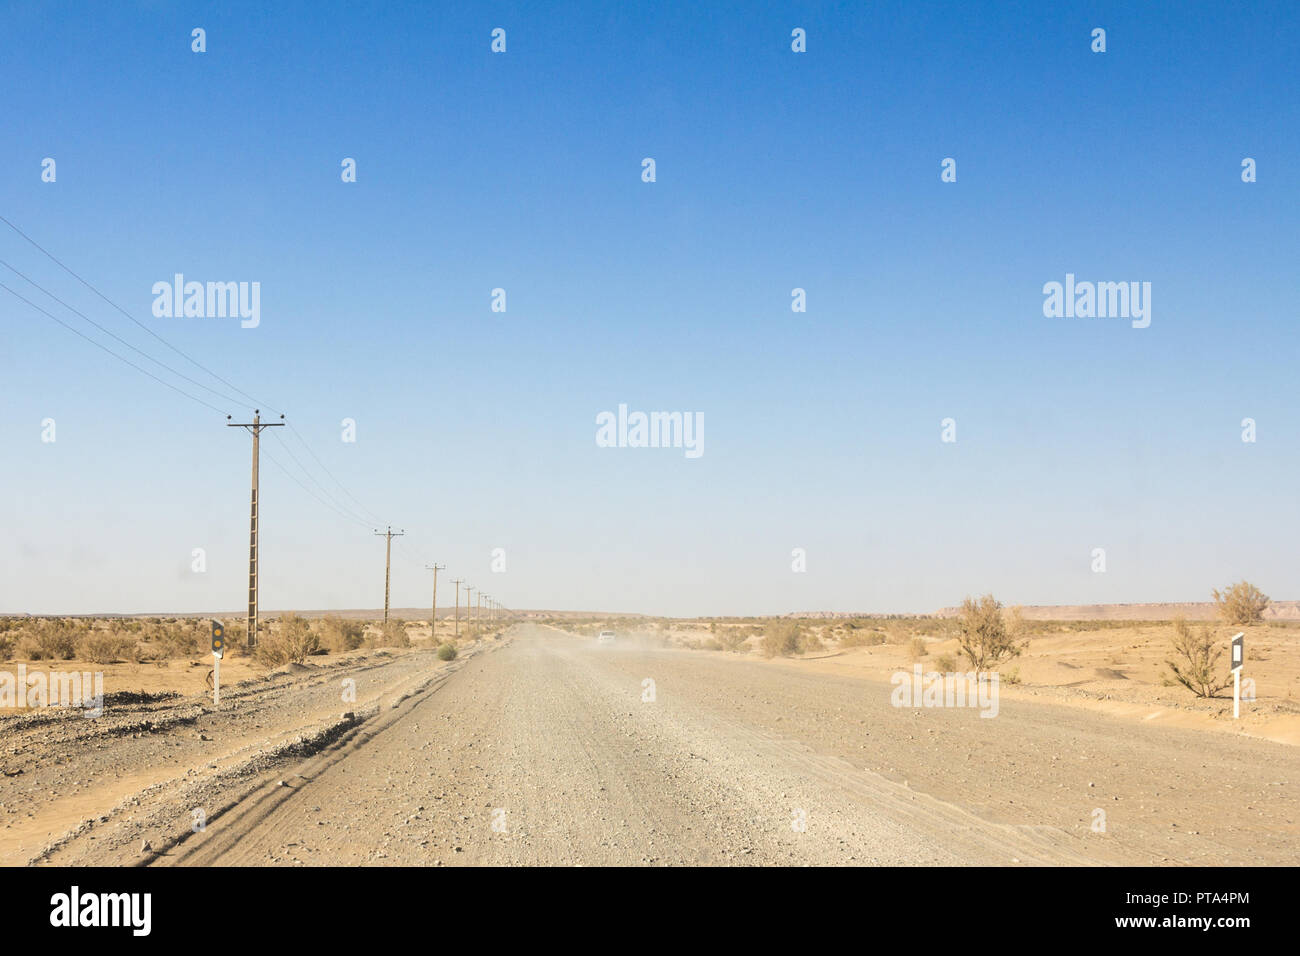 Dusty desert road in the Maranjab desert, in Iran, surrounded by sand and dry bushes, with the shape of a car visible in the background  Picture of a  - Stock Image